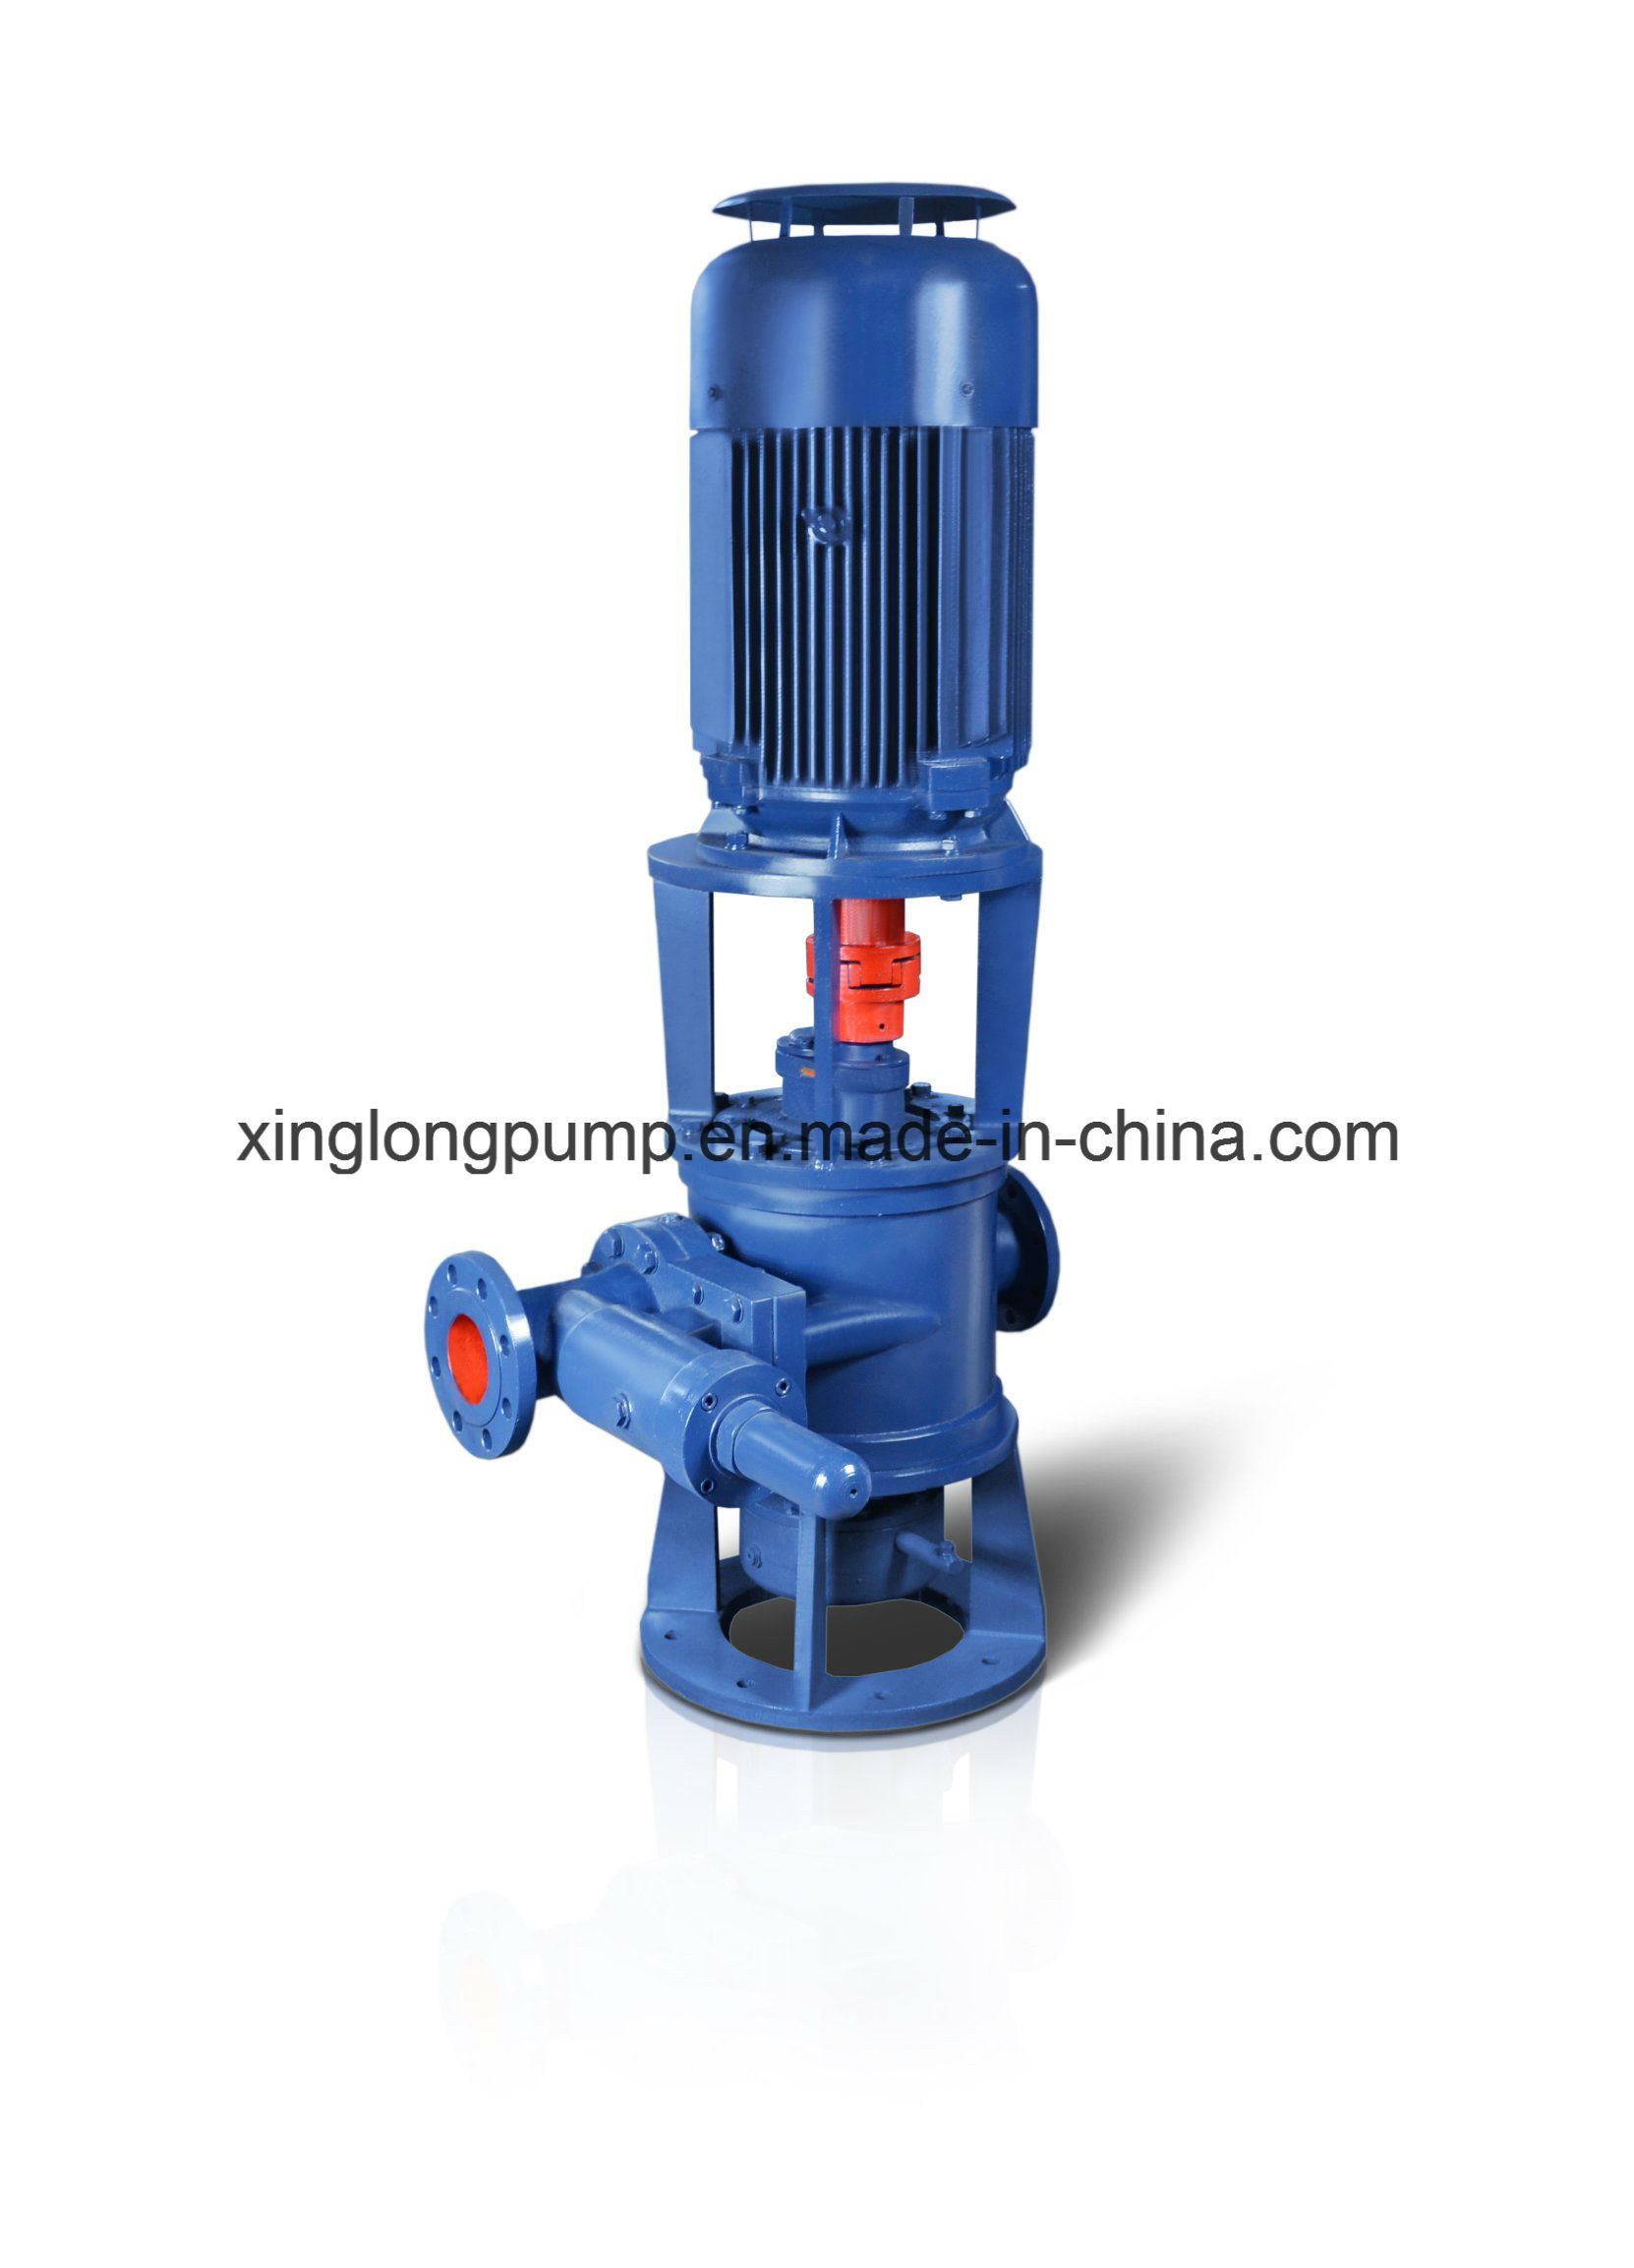 Xs Serial Twin Screw Pump